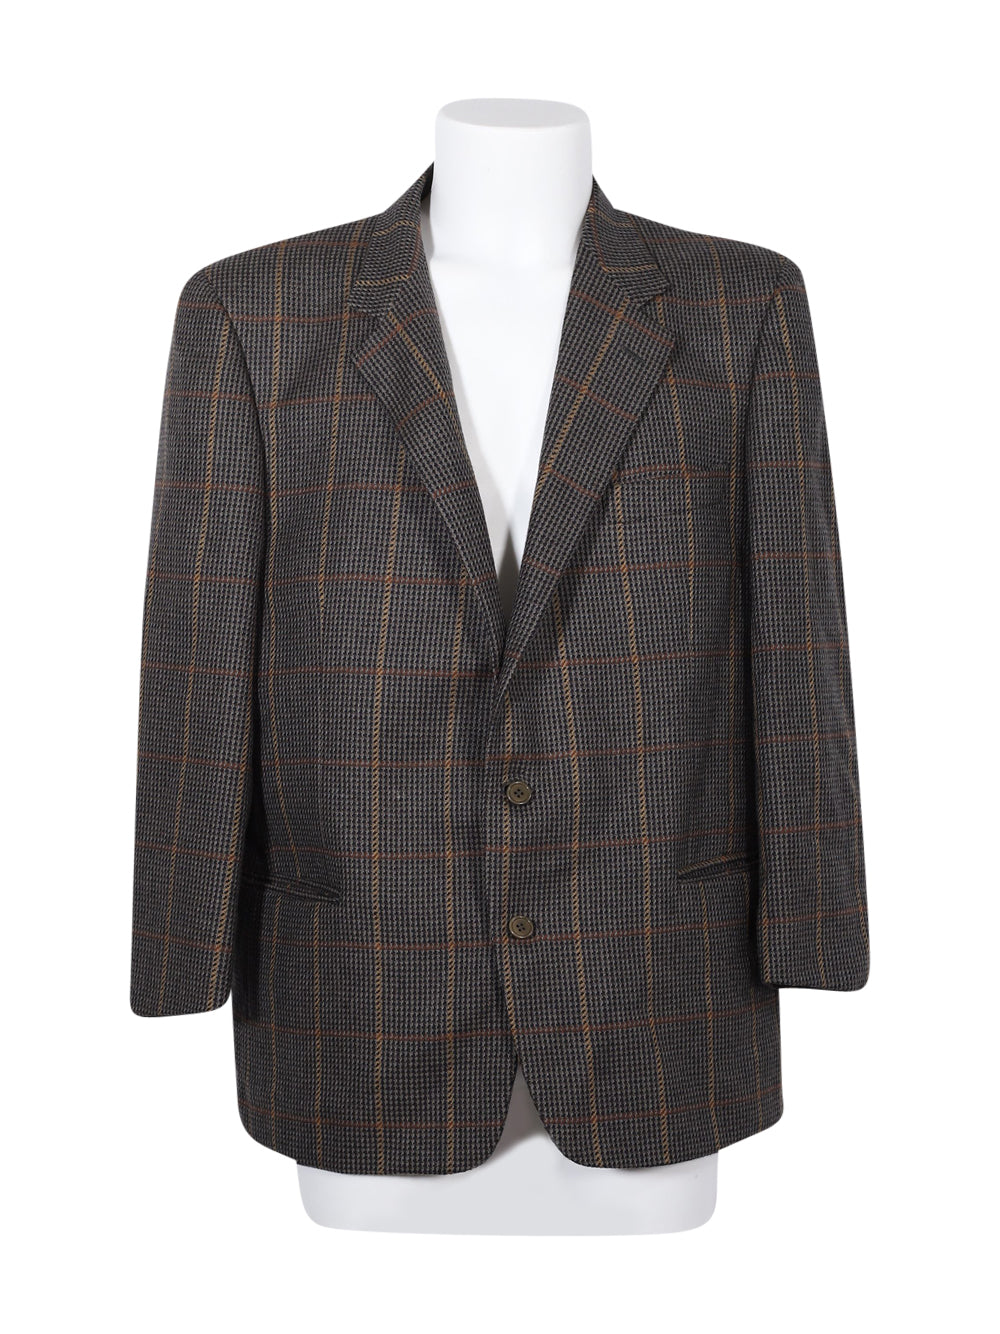 Front photo of Preloved nino cerruti Grey Man's blazer - size 44/XXL